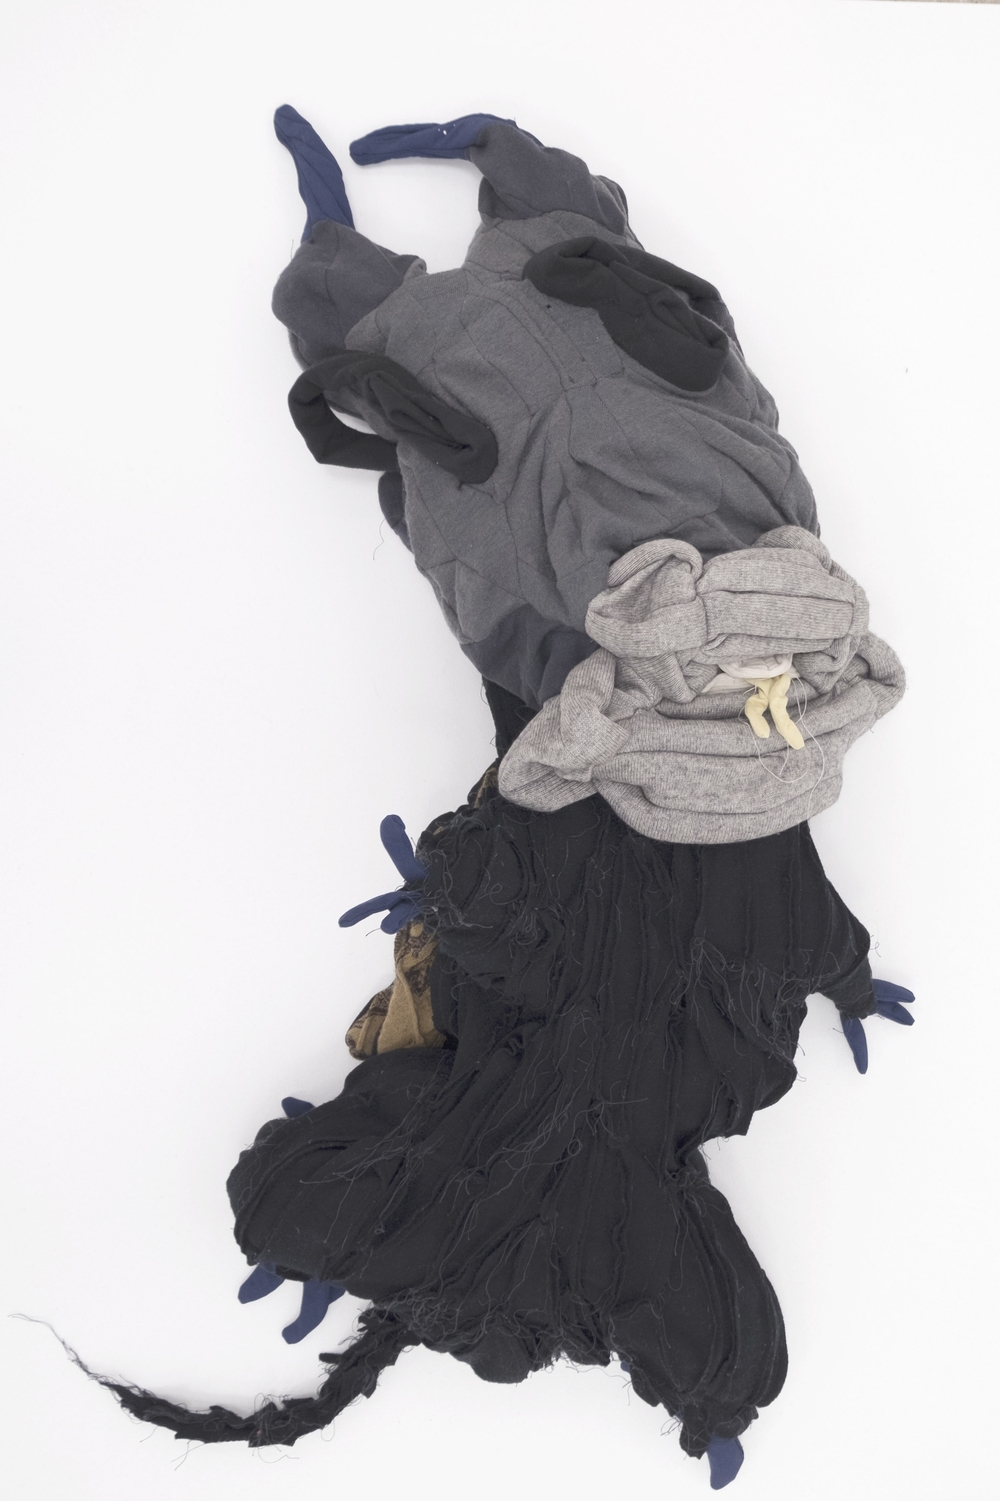 Peter Opheim  Anne,  2016 previously worn clothing from a single individual 39h x 15w x 8d in.